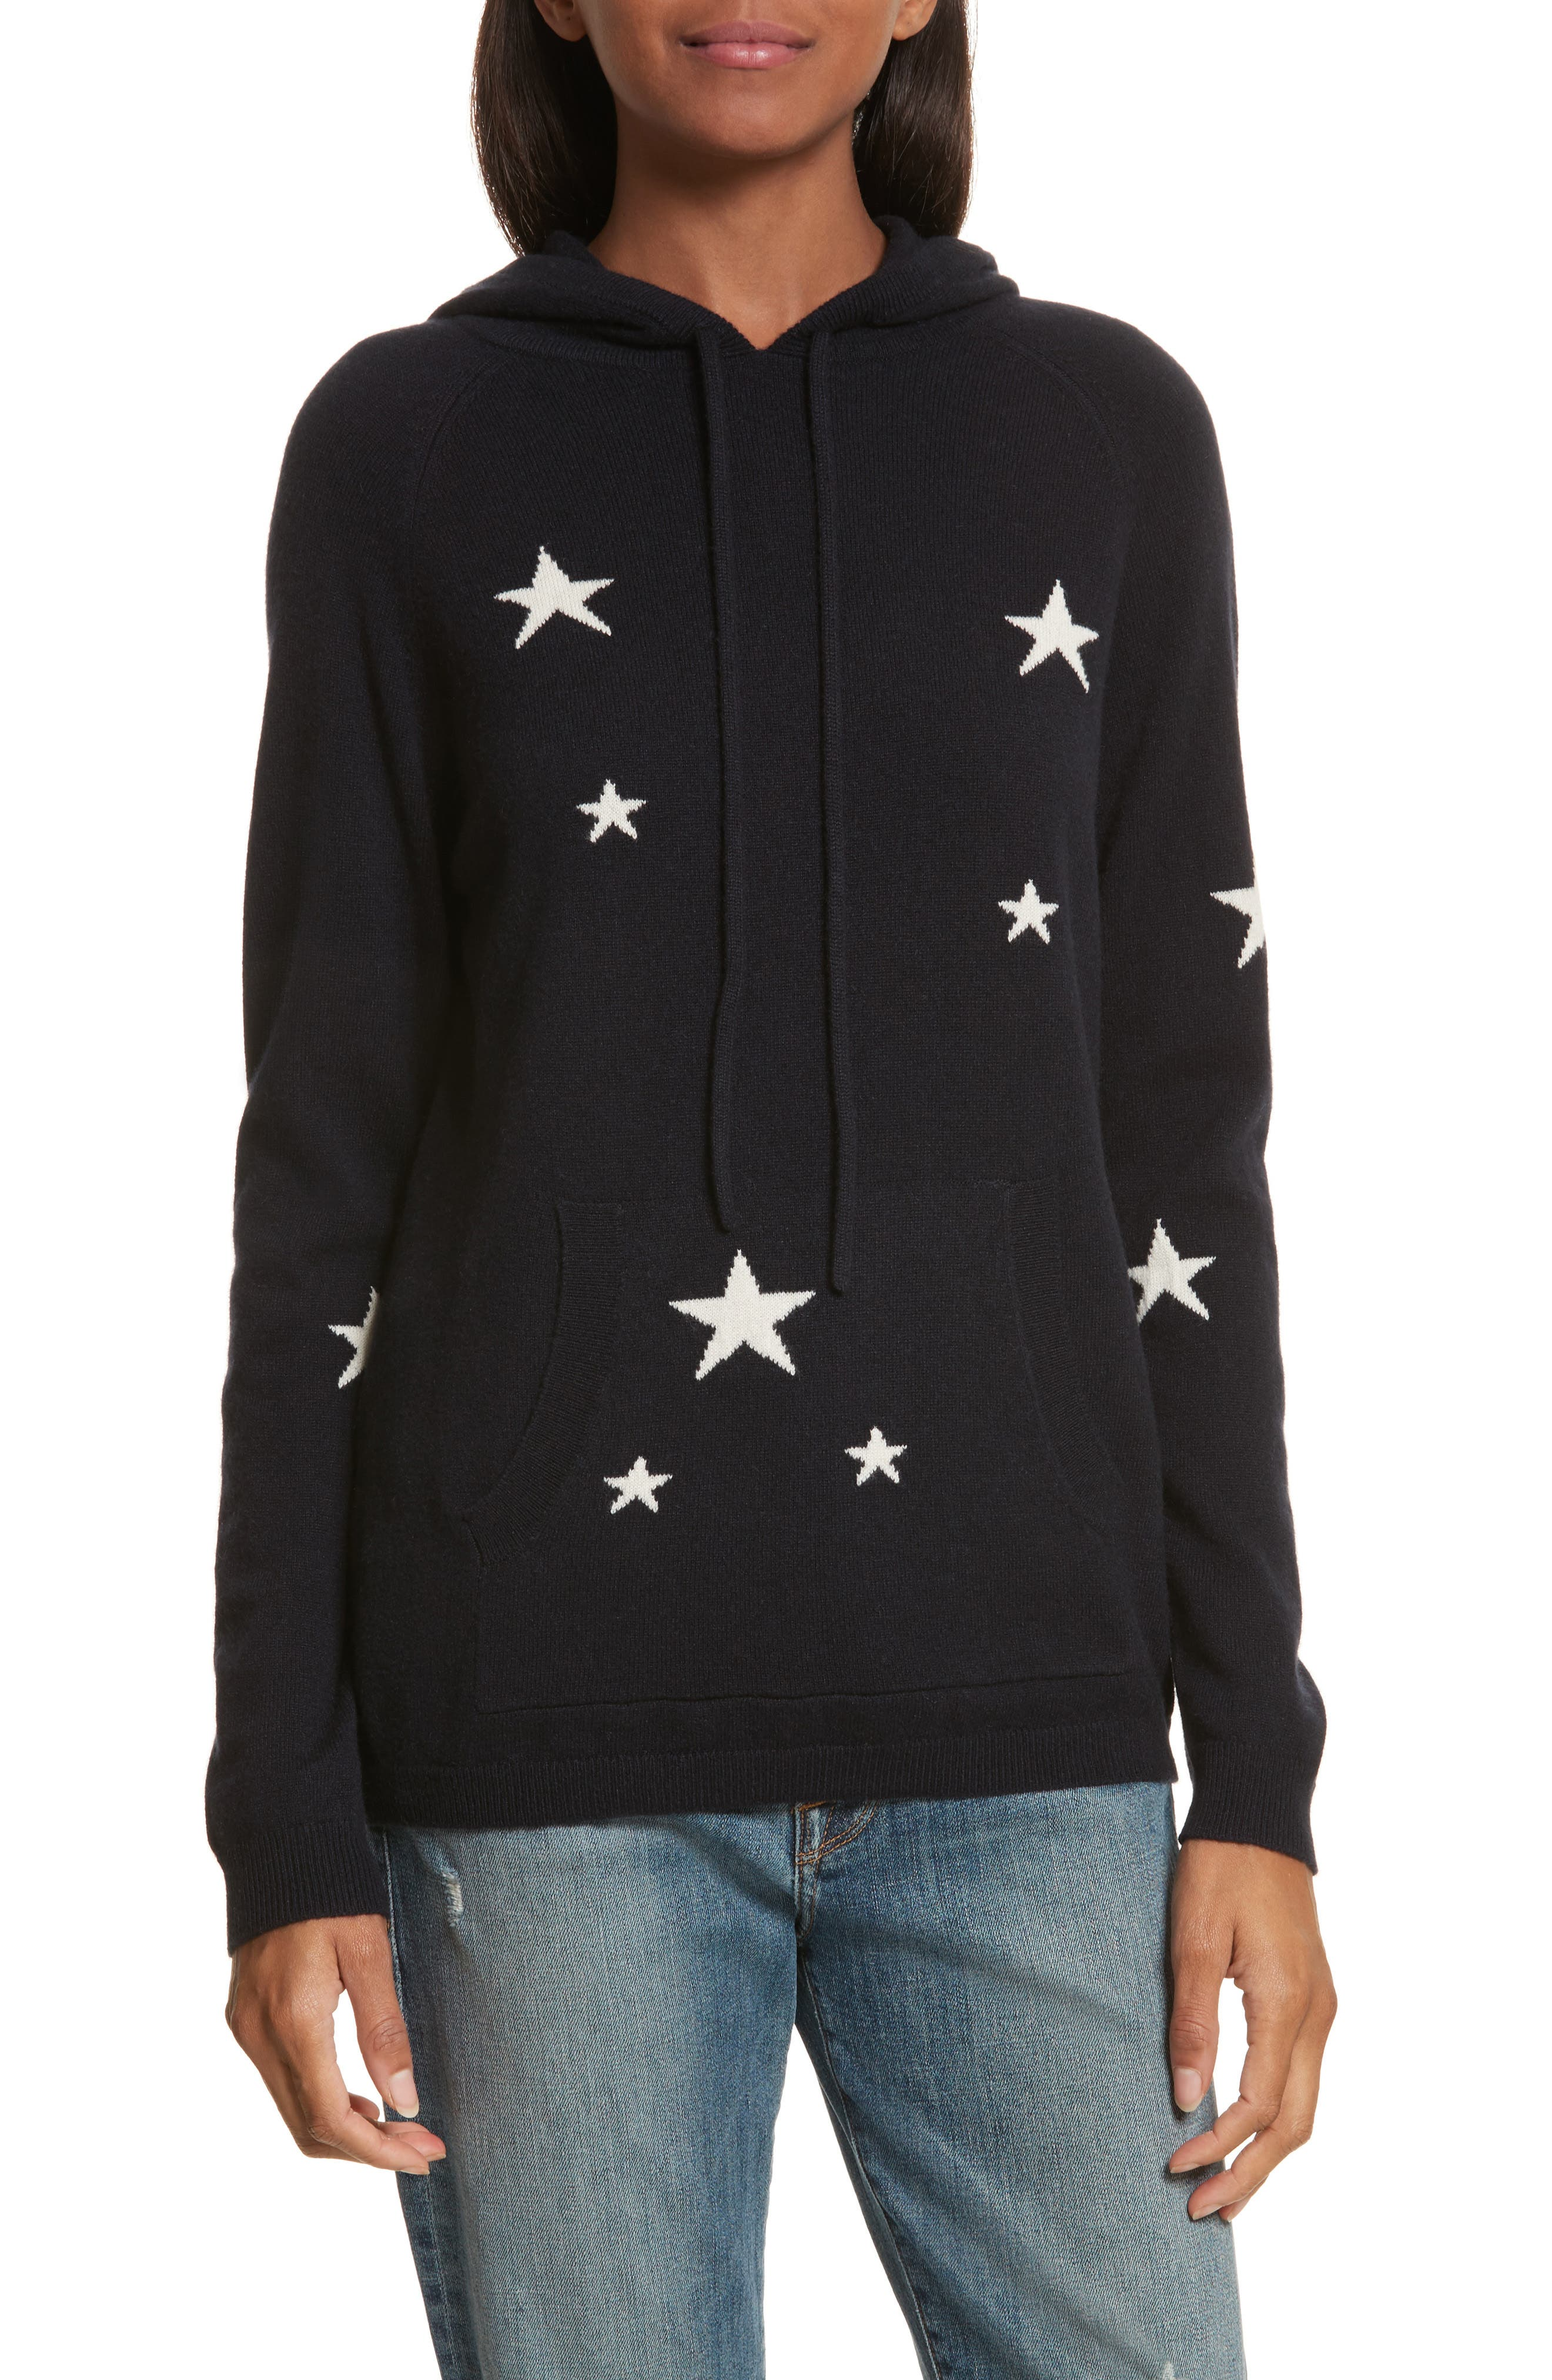 CHINTI & PARKER Star Cashmere Hoodie,                         Main,                         color, Navy/ Cream